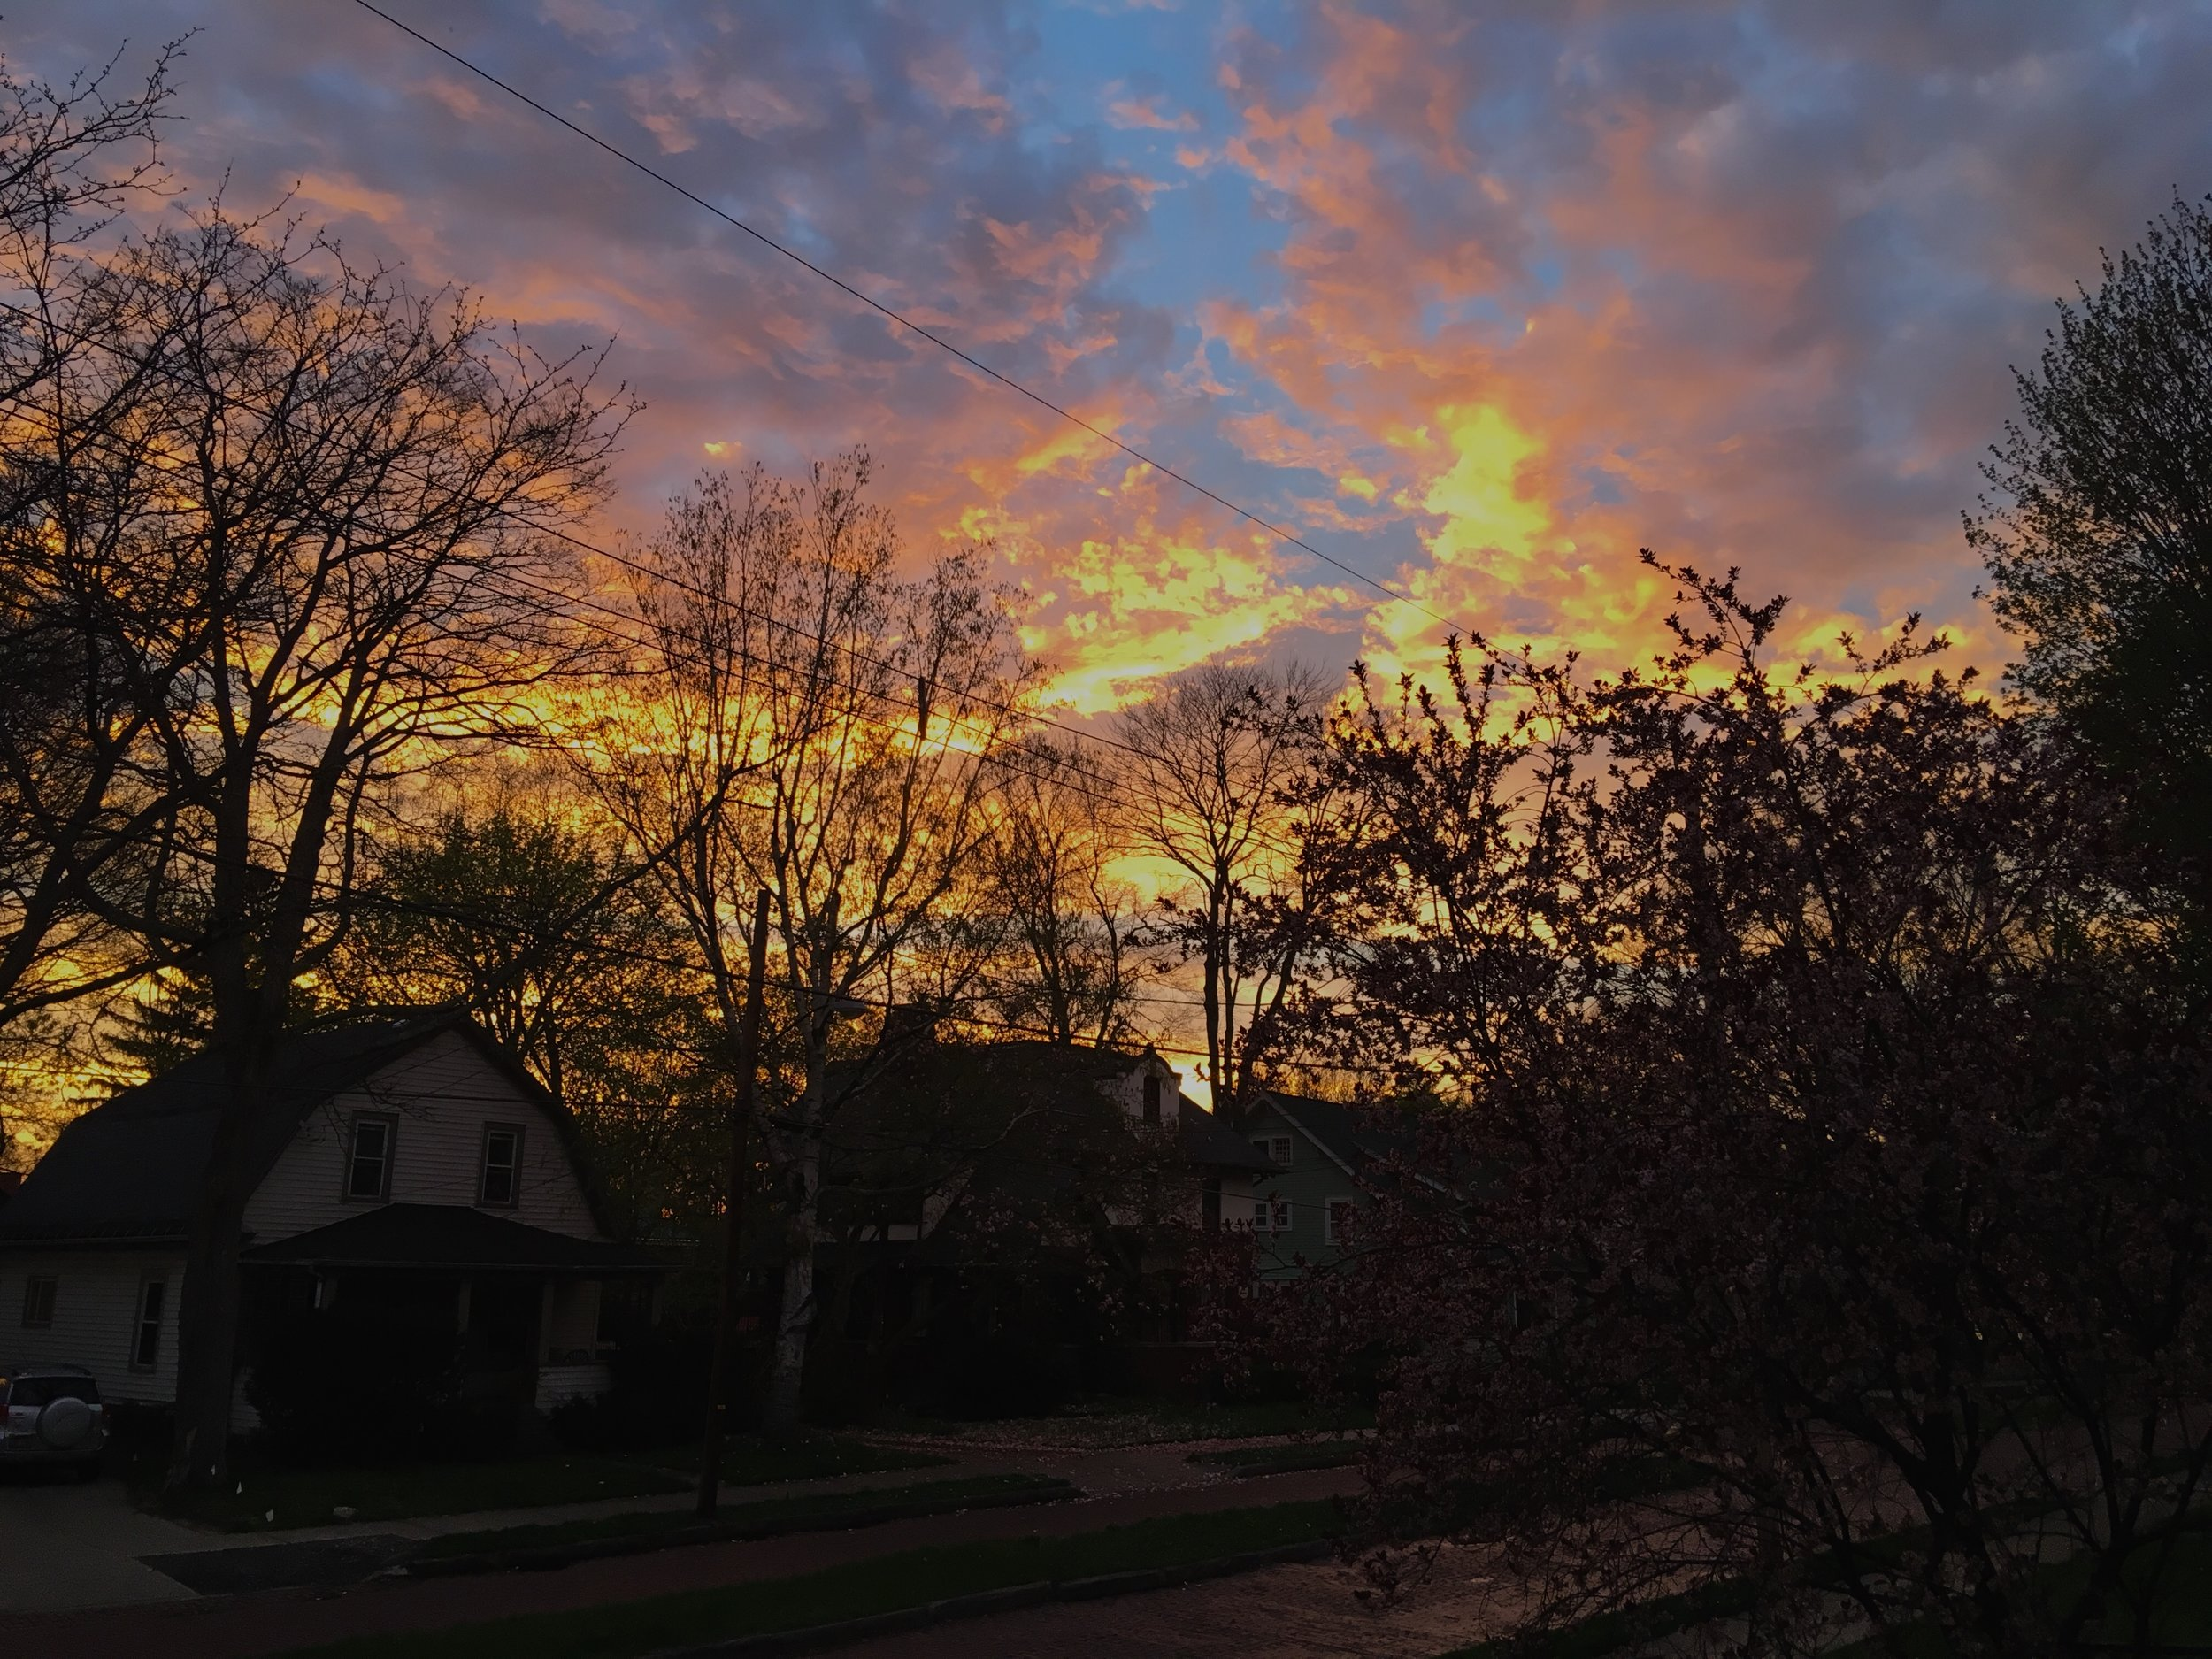 Sunset from our porch.